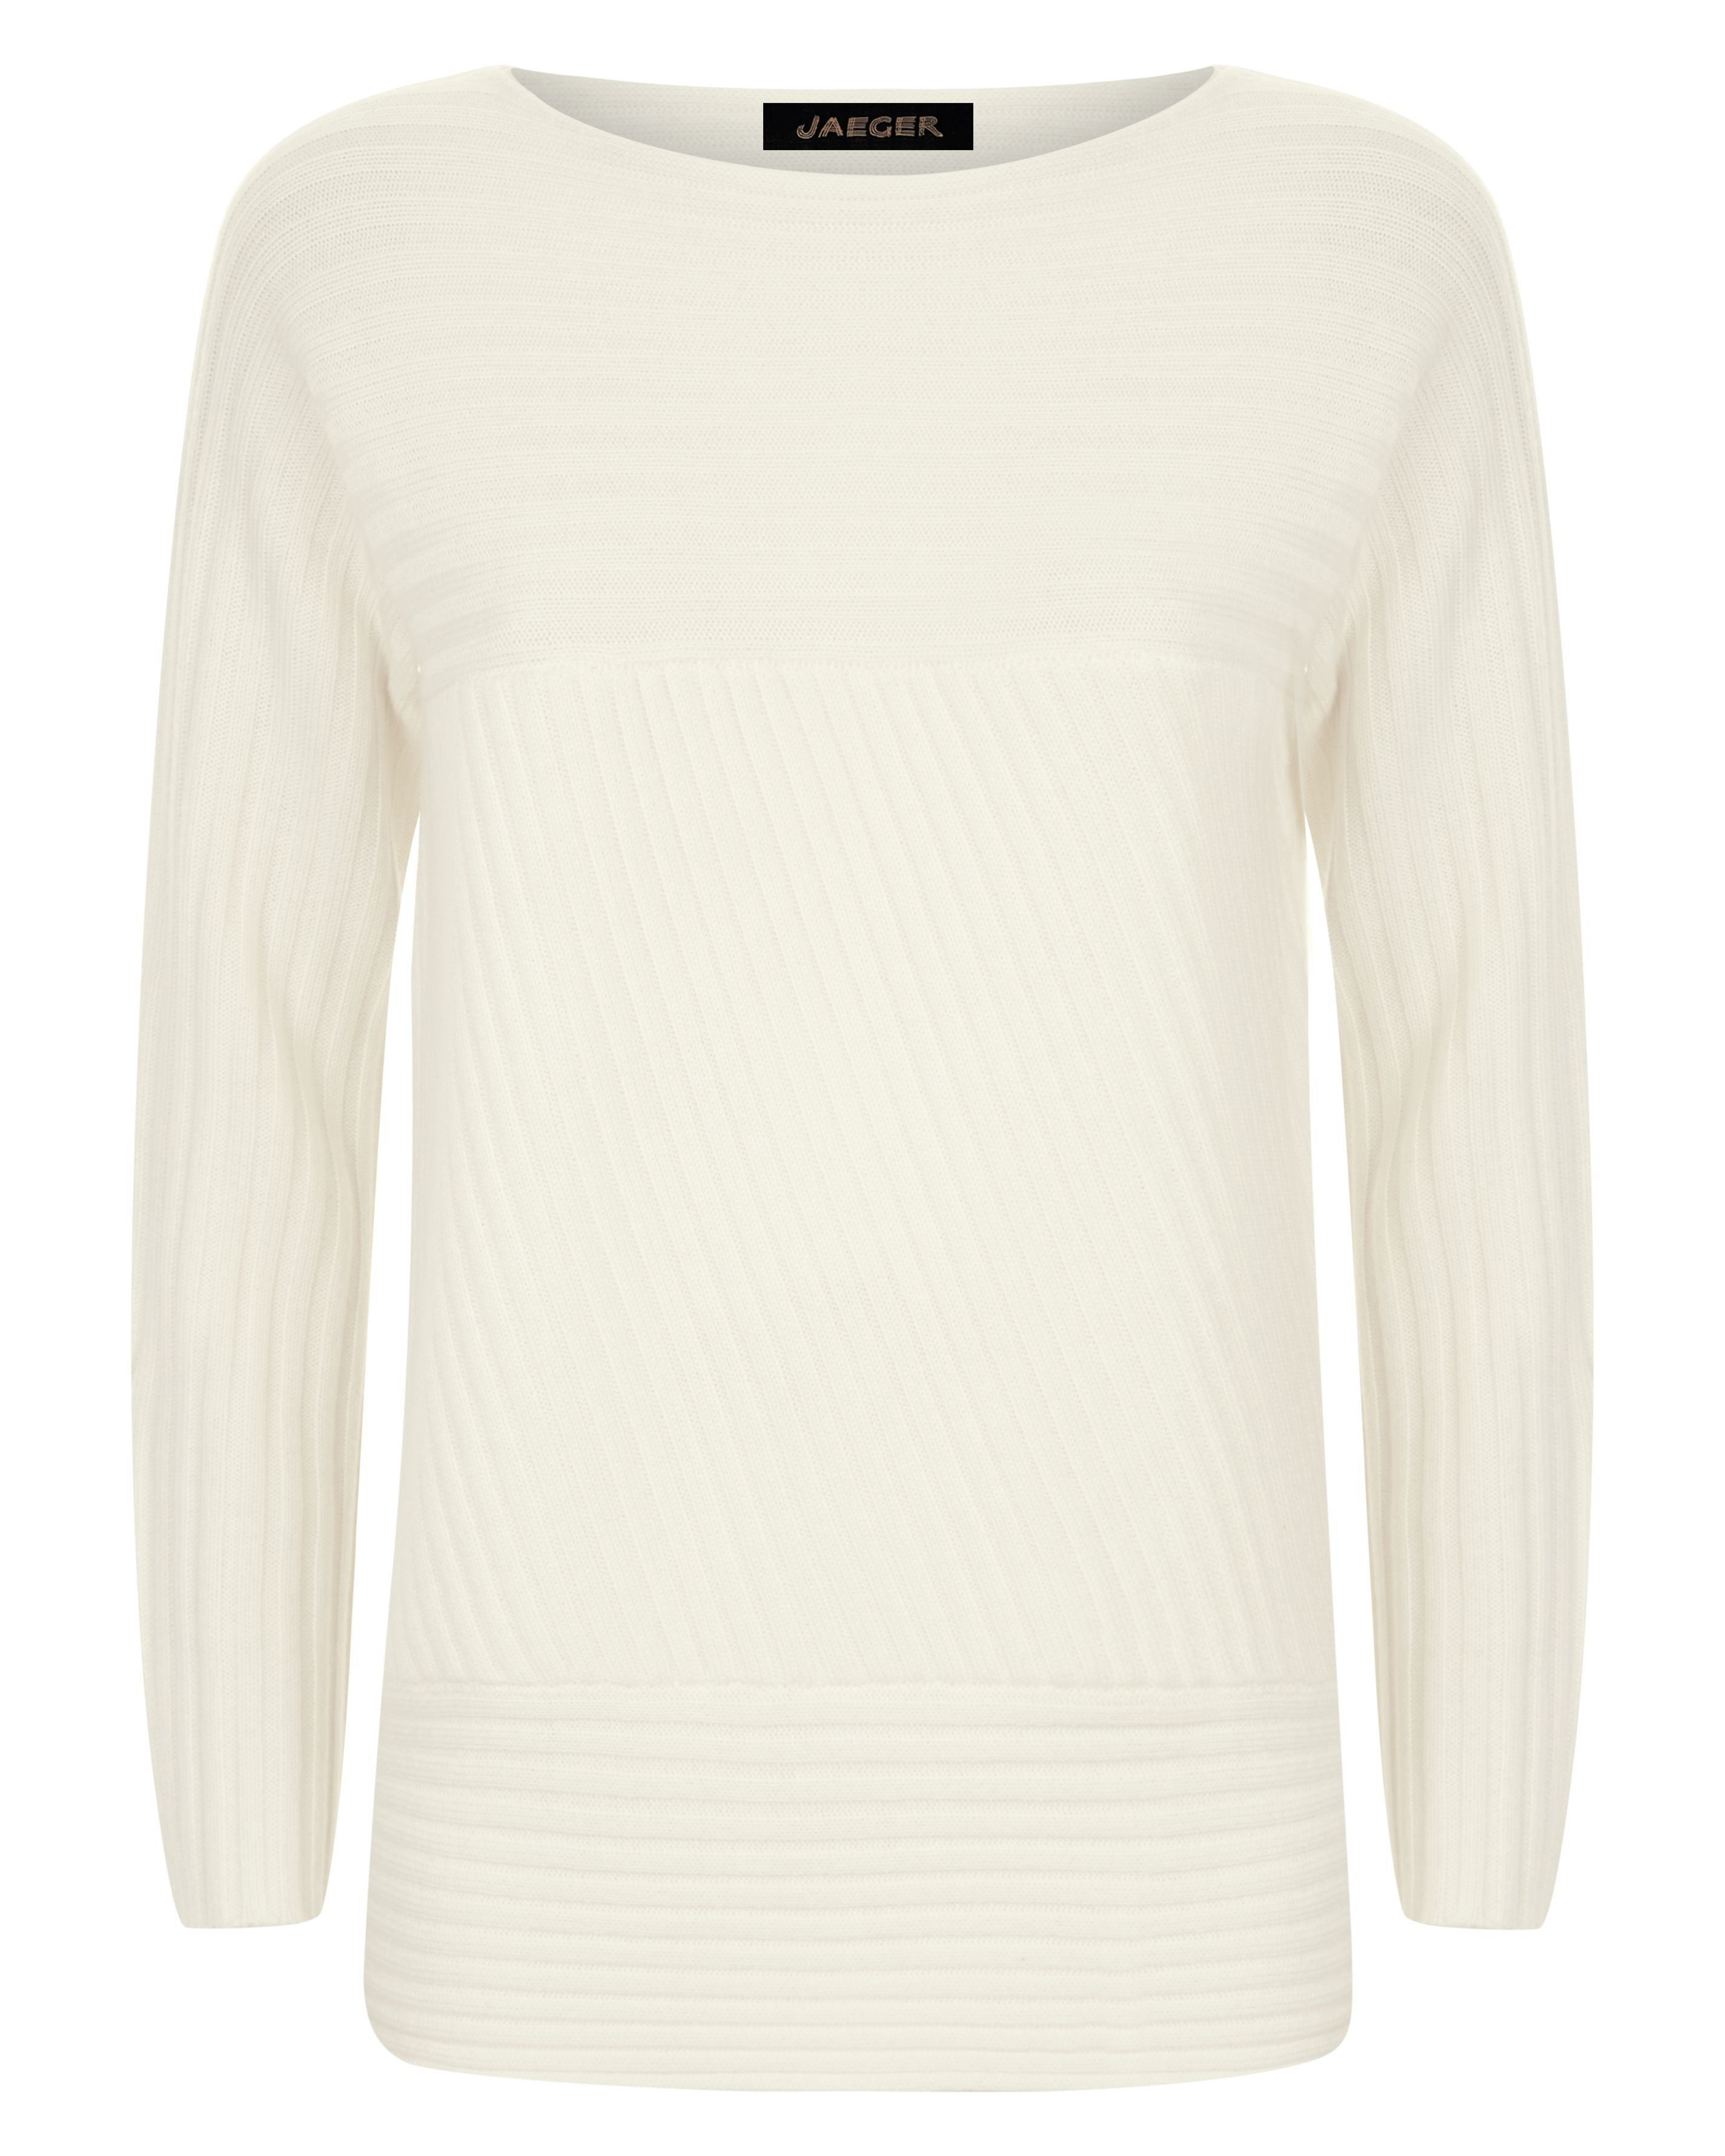 Jaeger Wool Contrast Ribbed Sweater, White.